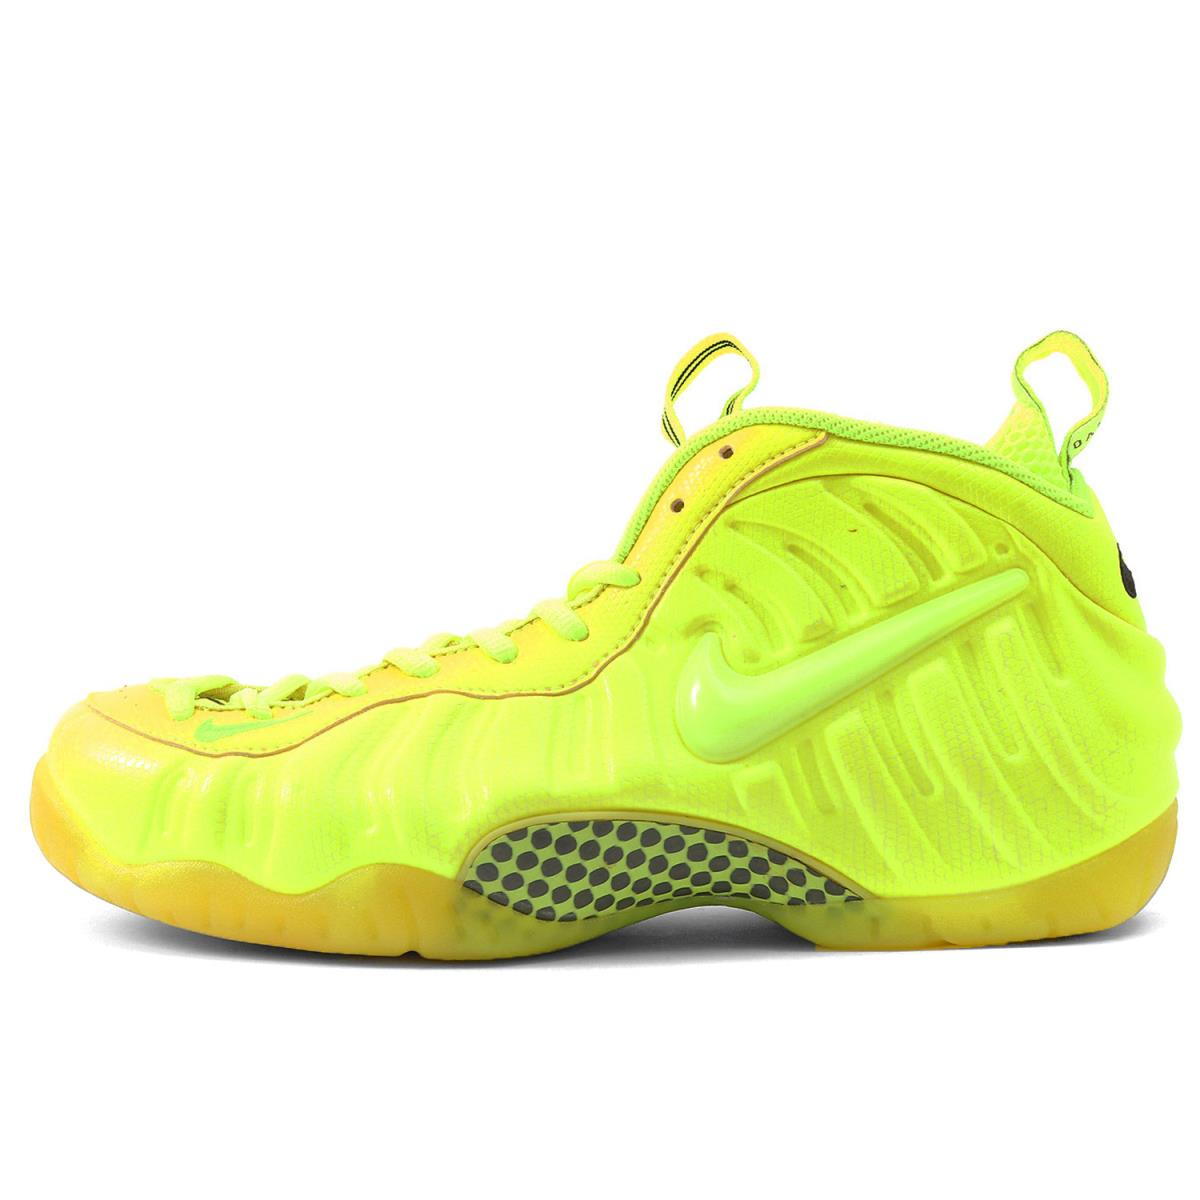 db38390a4b0 BEEGLE by Boo-Bee  NIKE (Nike) AIR FOAMPOSITE PRO VOLT (624